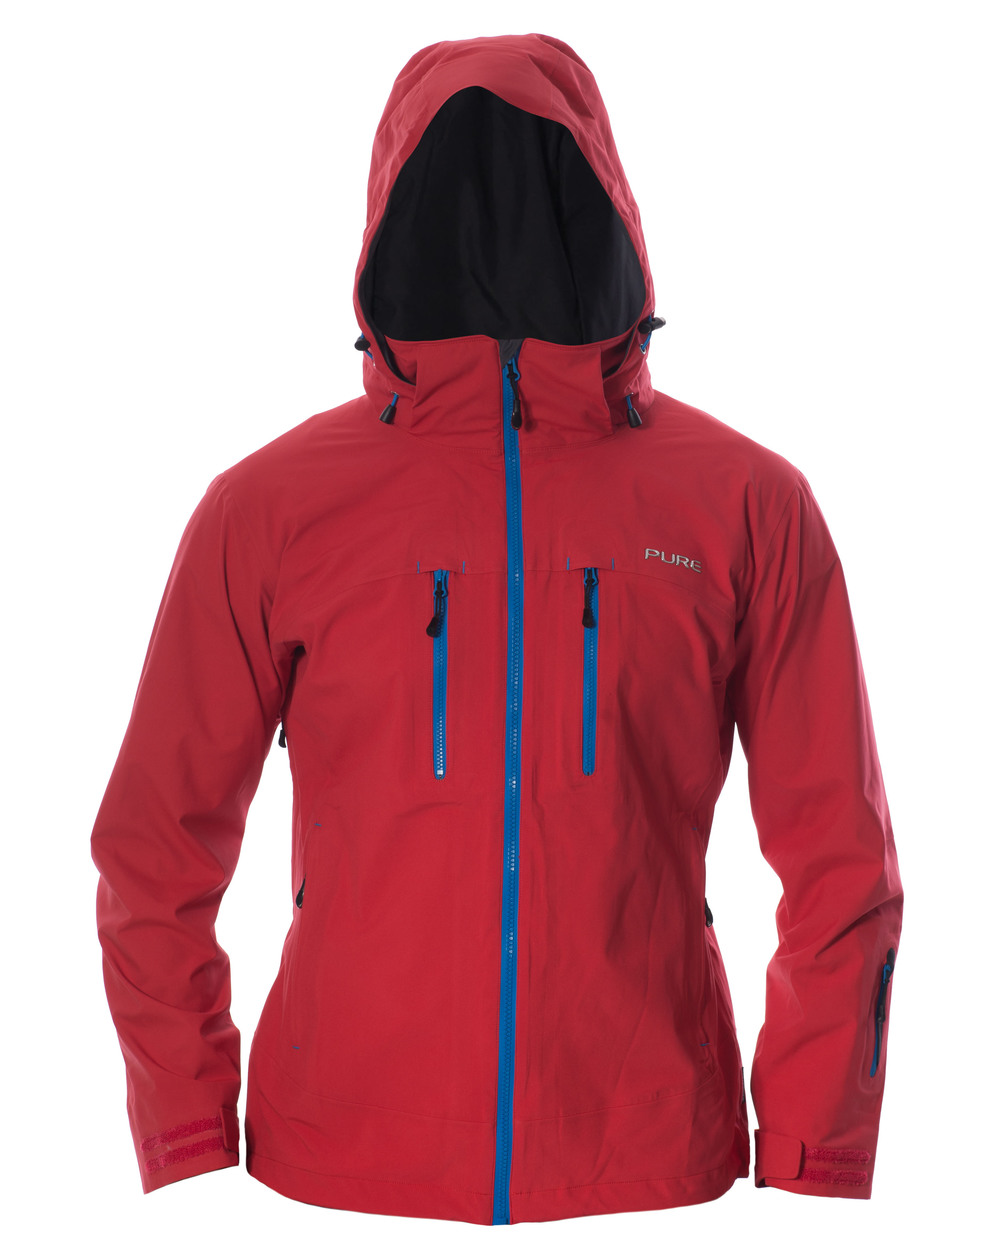 Copy of Everest Men's Jacket - Red / Notice Zips